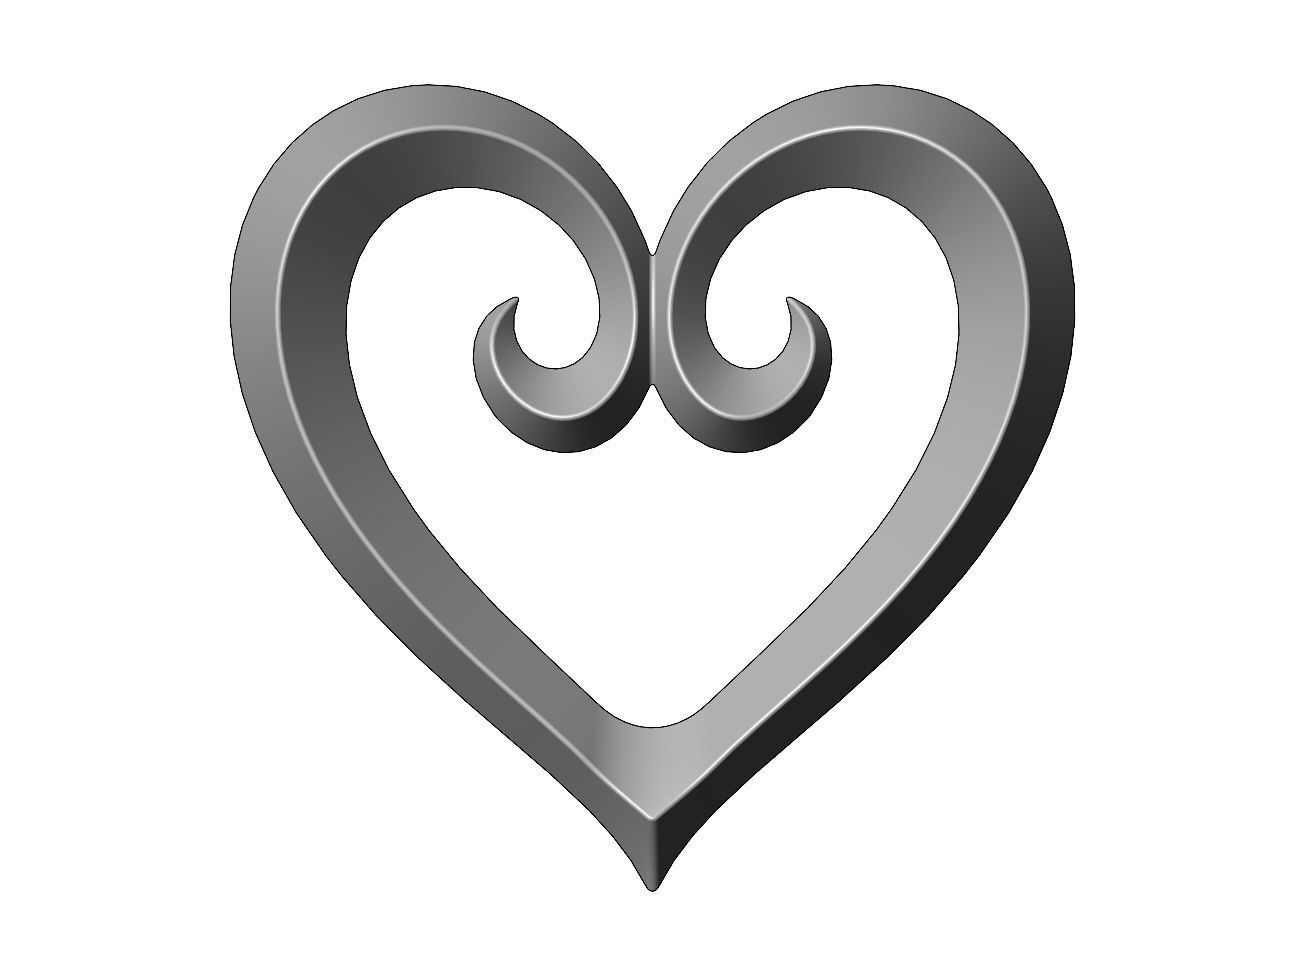 Heart shaped decoration element relief